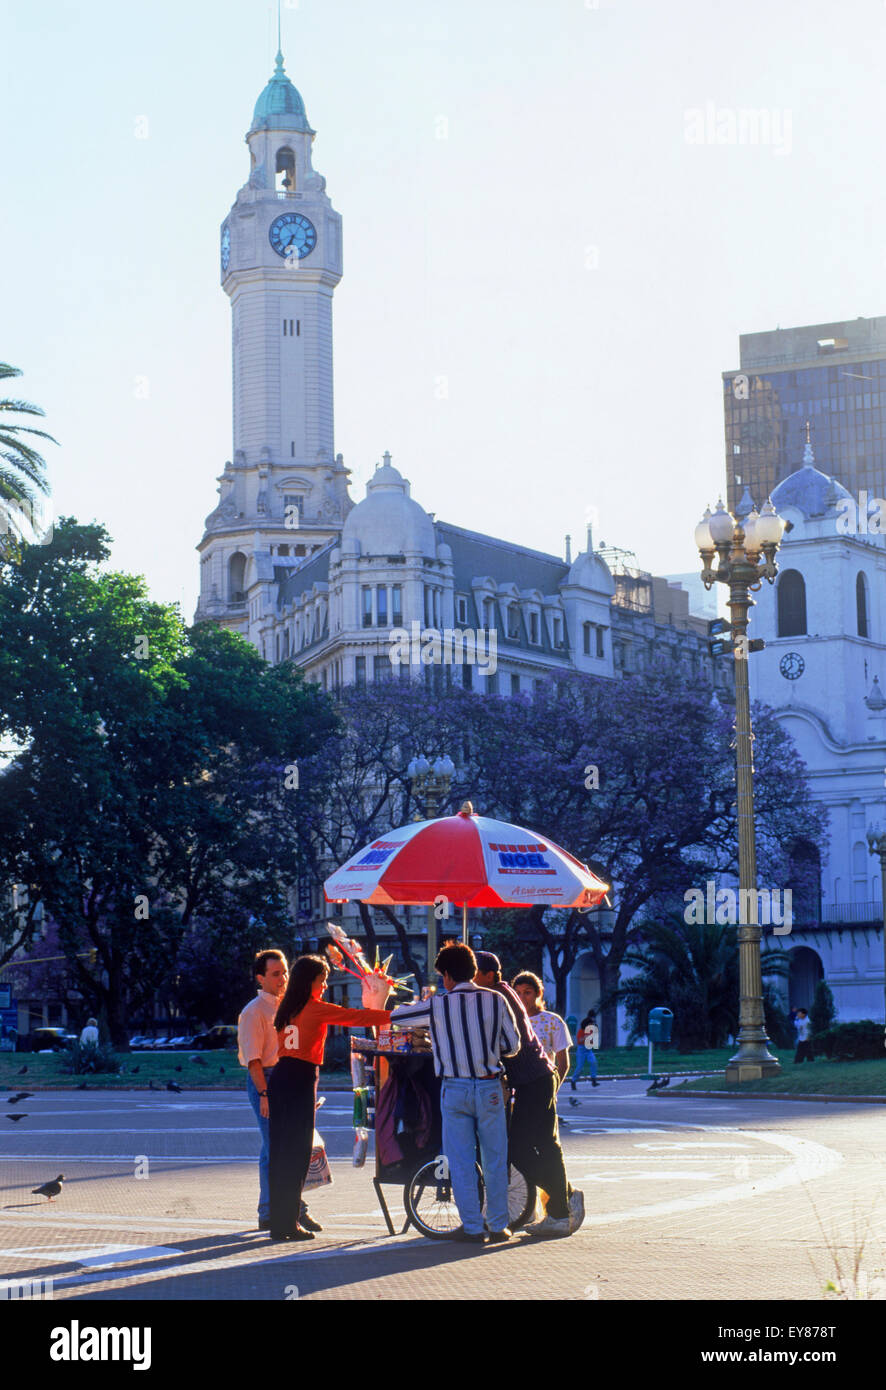 The Cabildo and Clock Tower at Plaza de Mayo with people on square buying ice cream in Buenos Aires - Stock Image